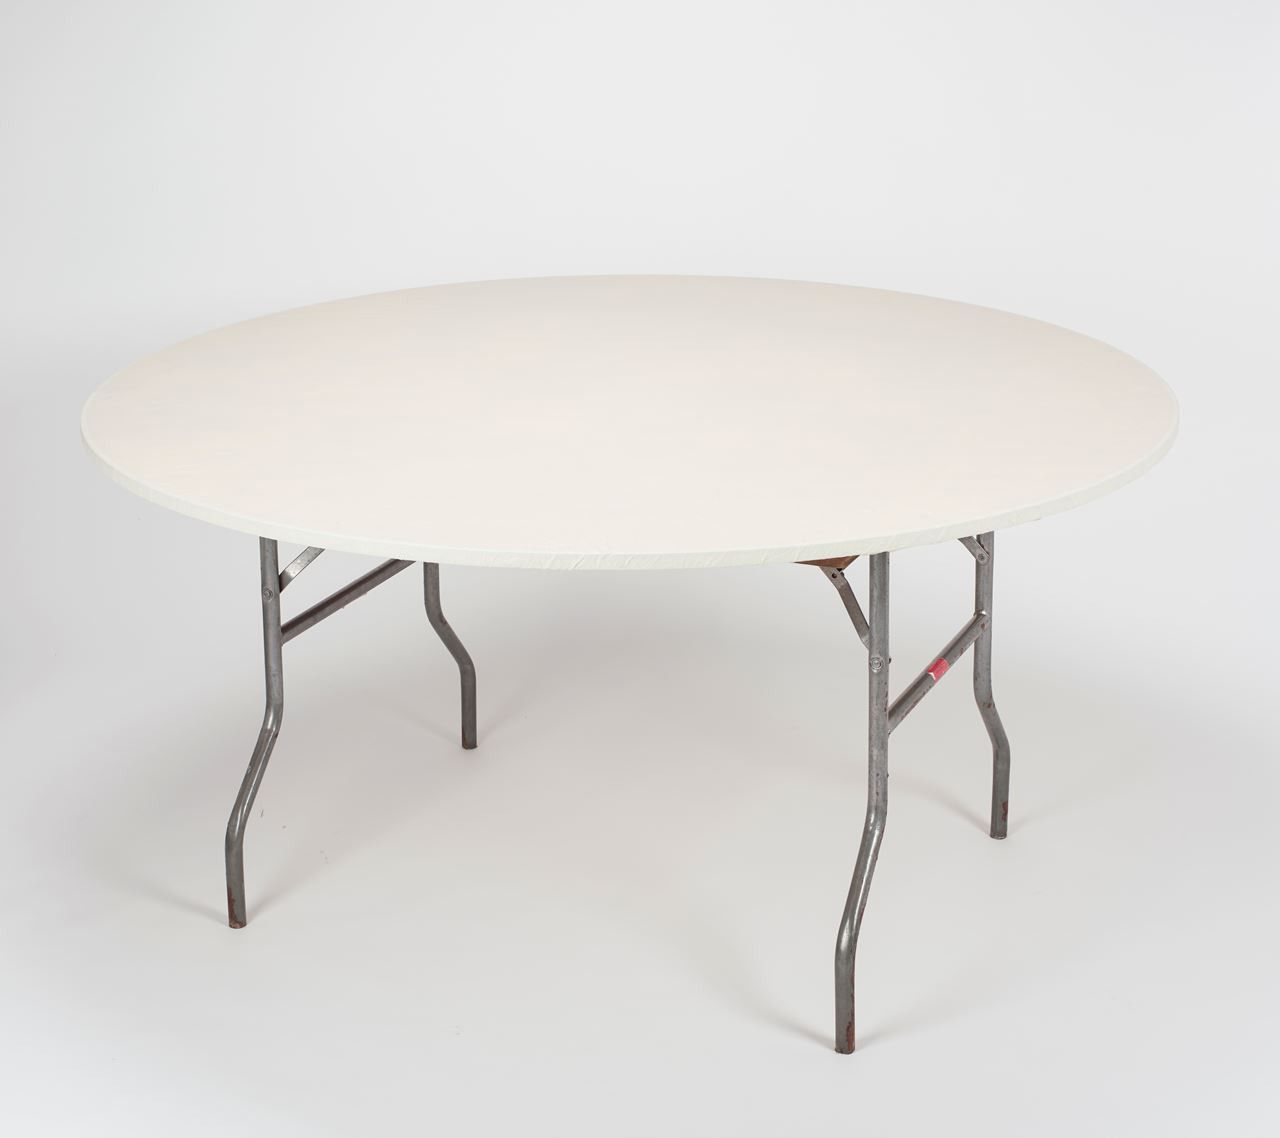 100 Round Plastic Table Covers With Elastic Cool Modern Furniture Check More At Http